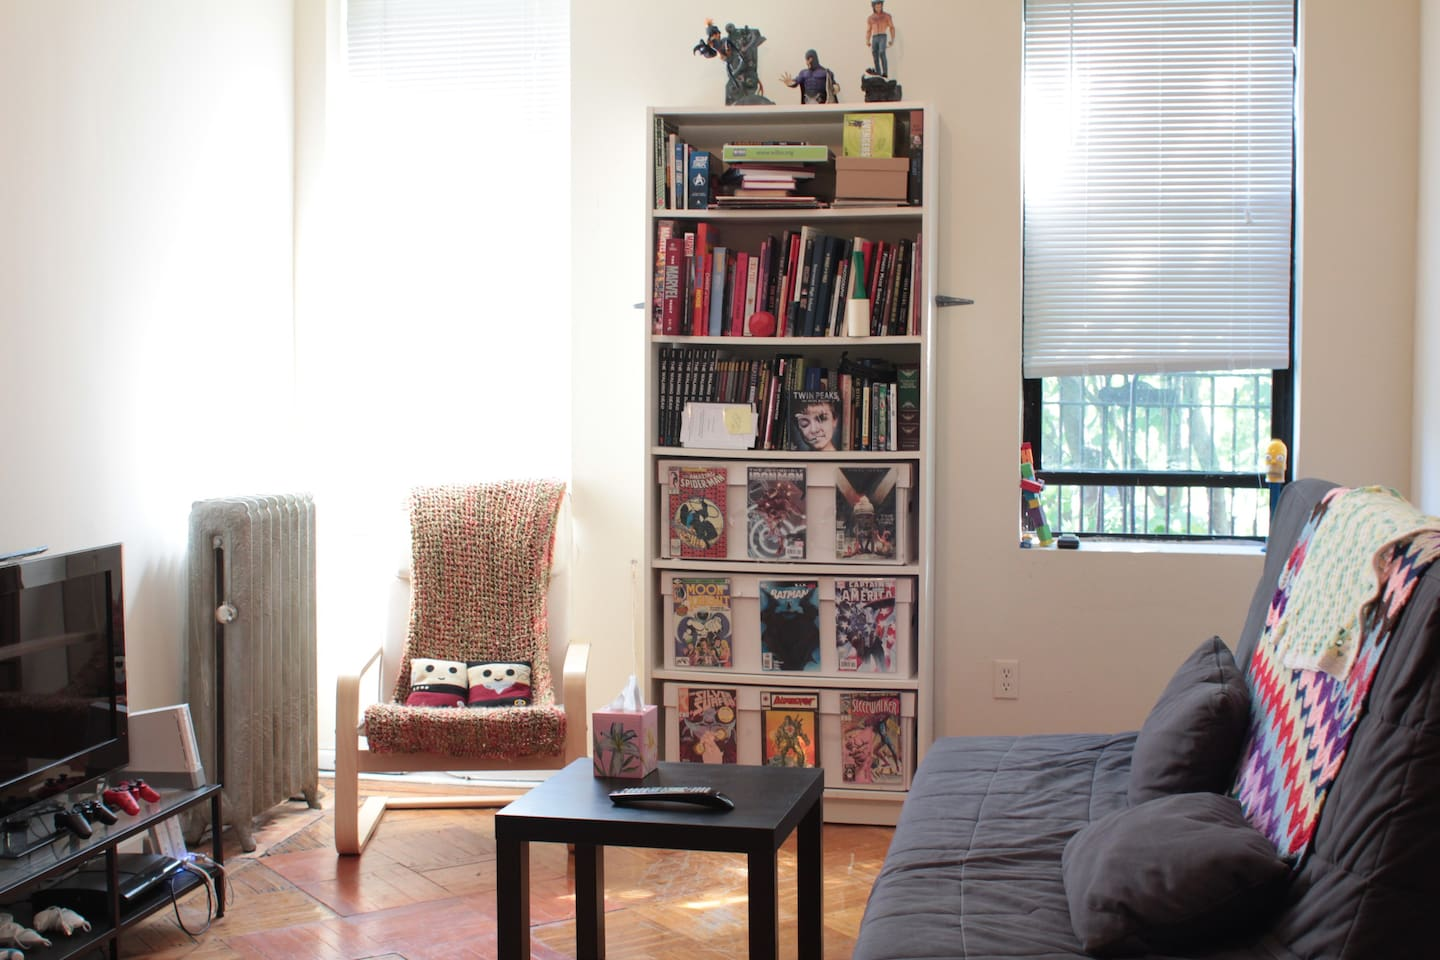 Our living room has lots of comics, graphic novels, games, DVDs and blu-rays to choose from!